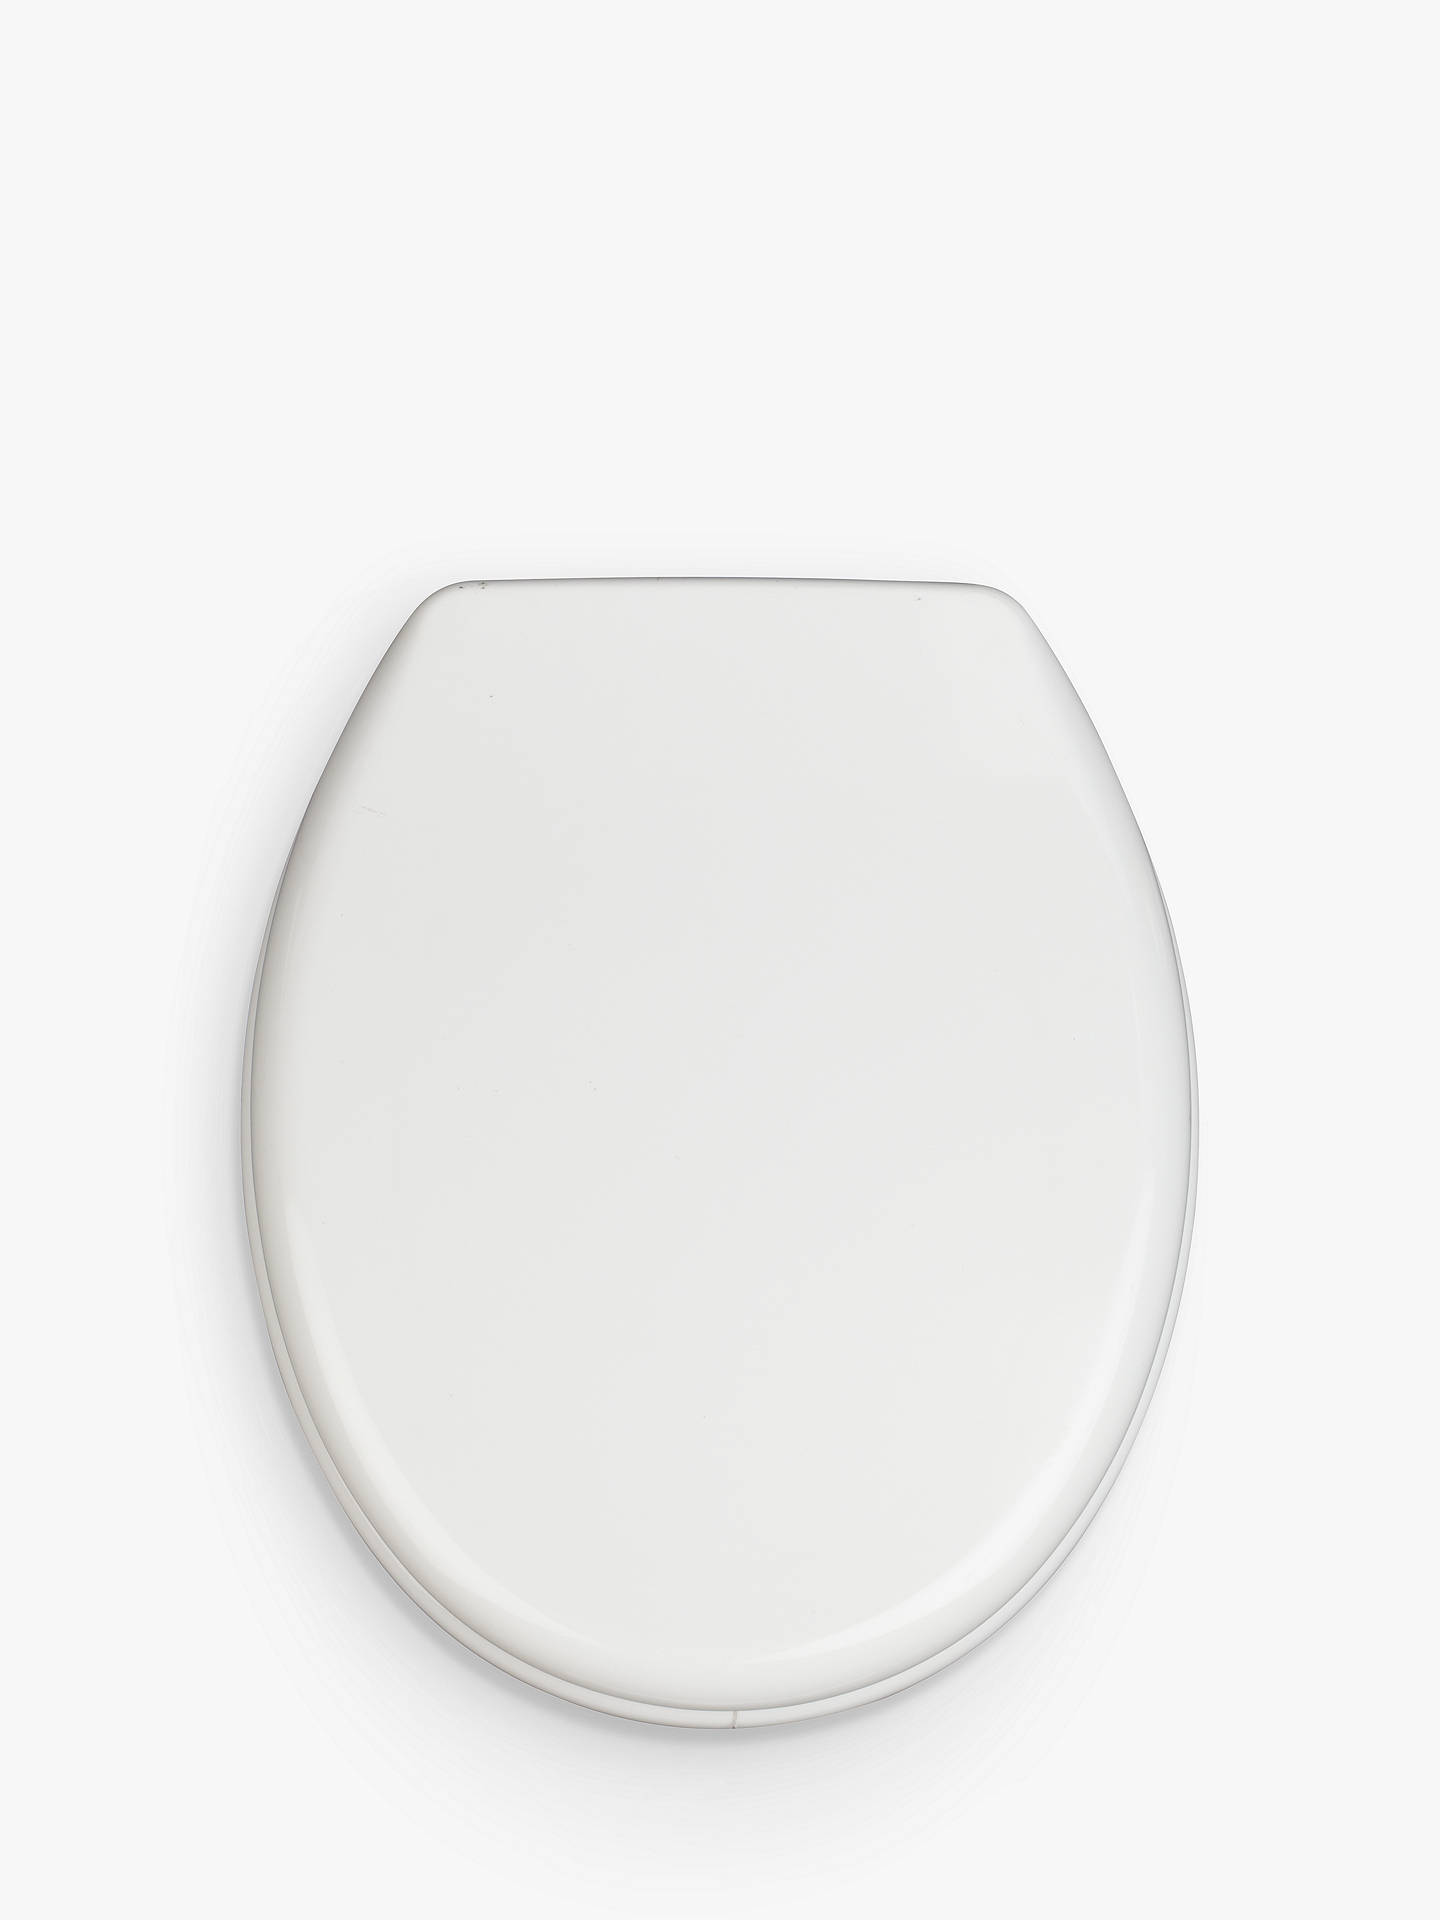 Buy John Lewis & Partners Quiet & Hygienic Toilet Seat, White Online at johnlewis.com